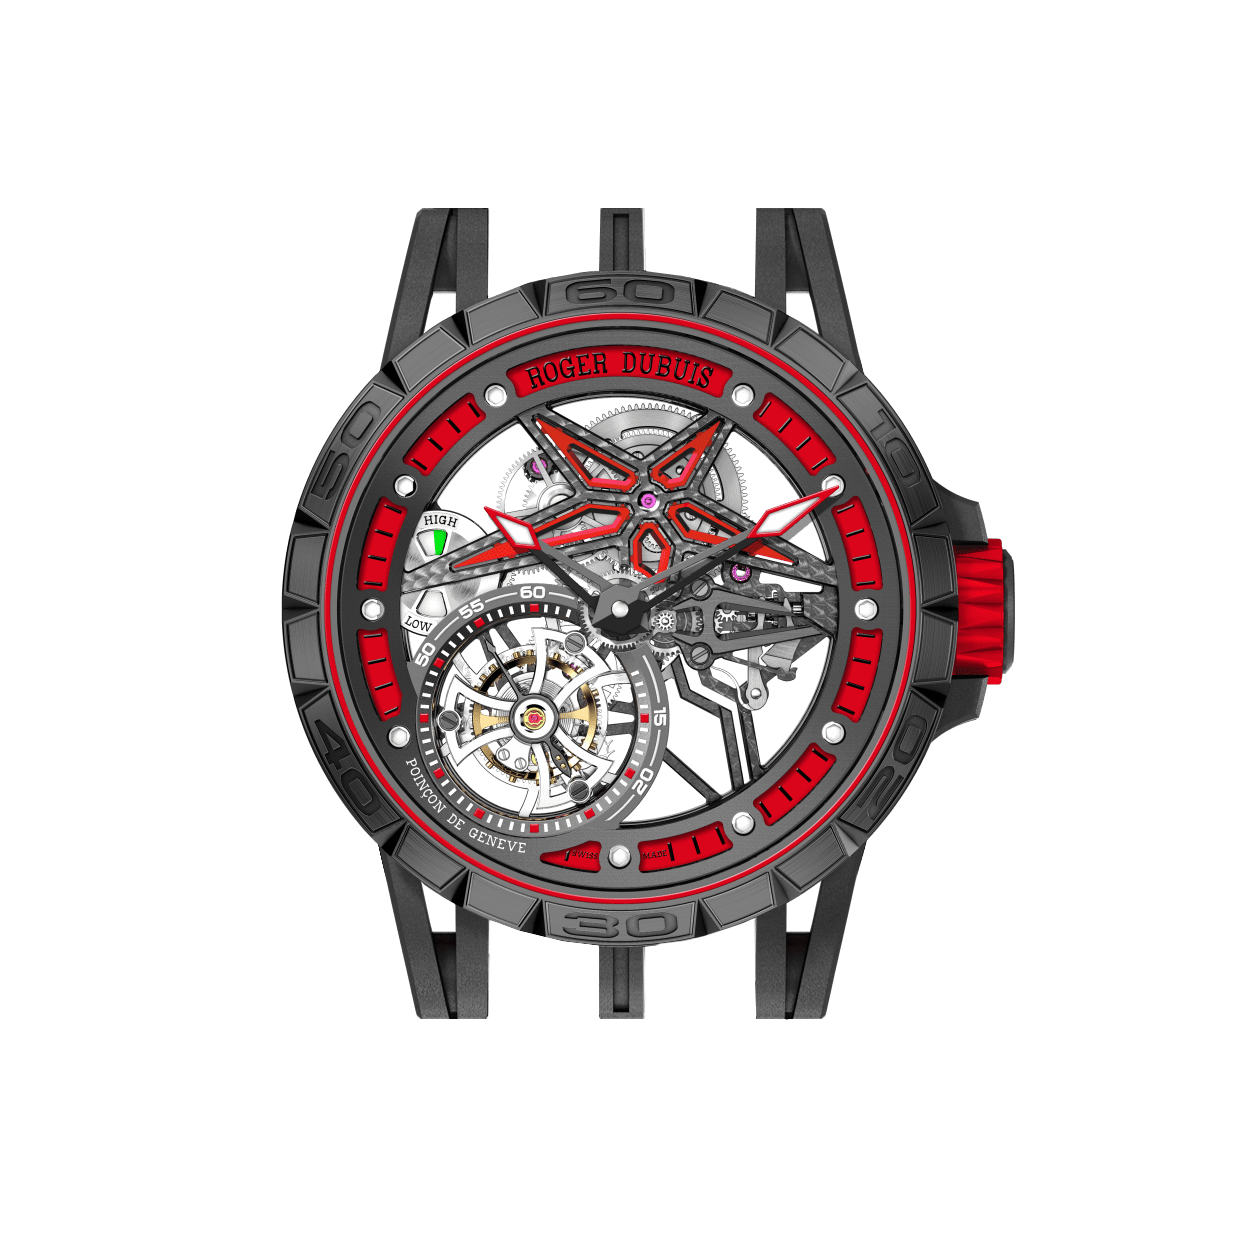 Bracelets for the Roger Dubuis Excalibur Spider Pirelli Pitstop